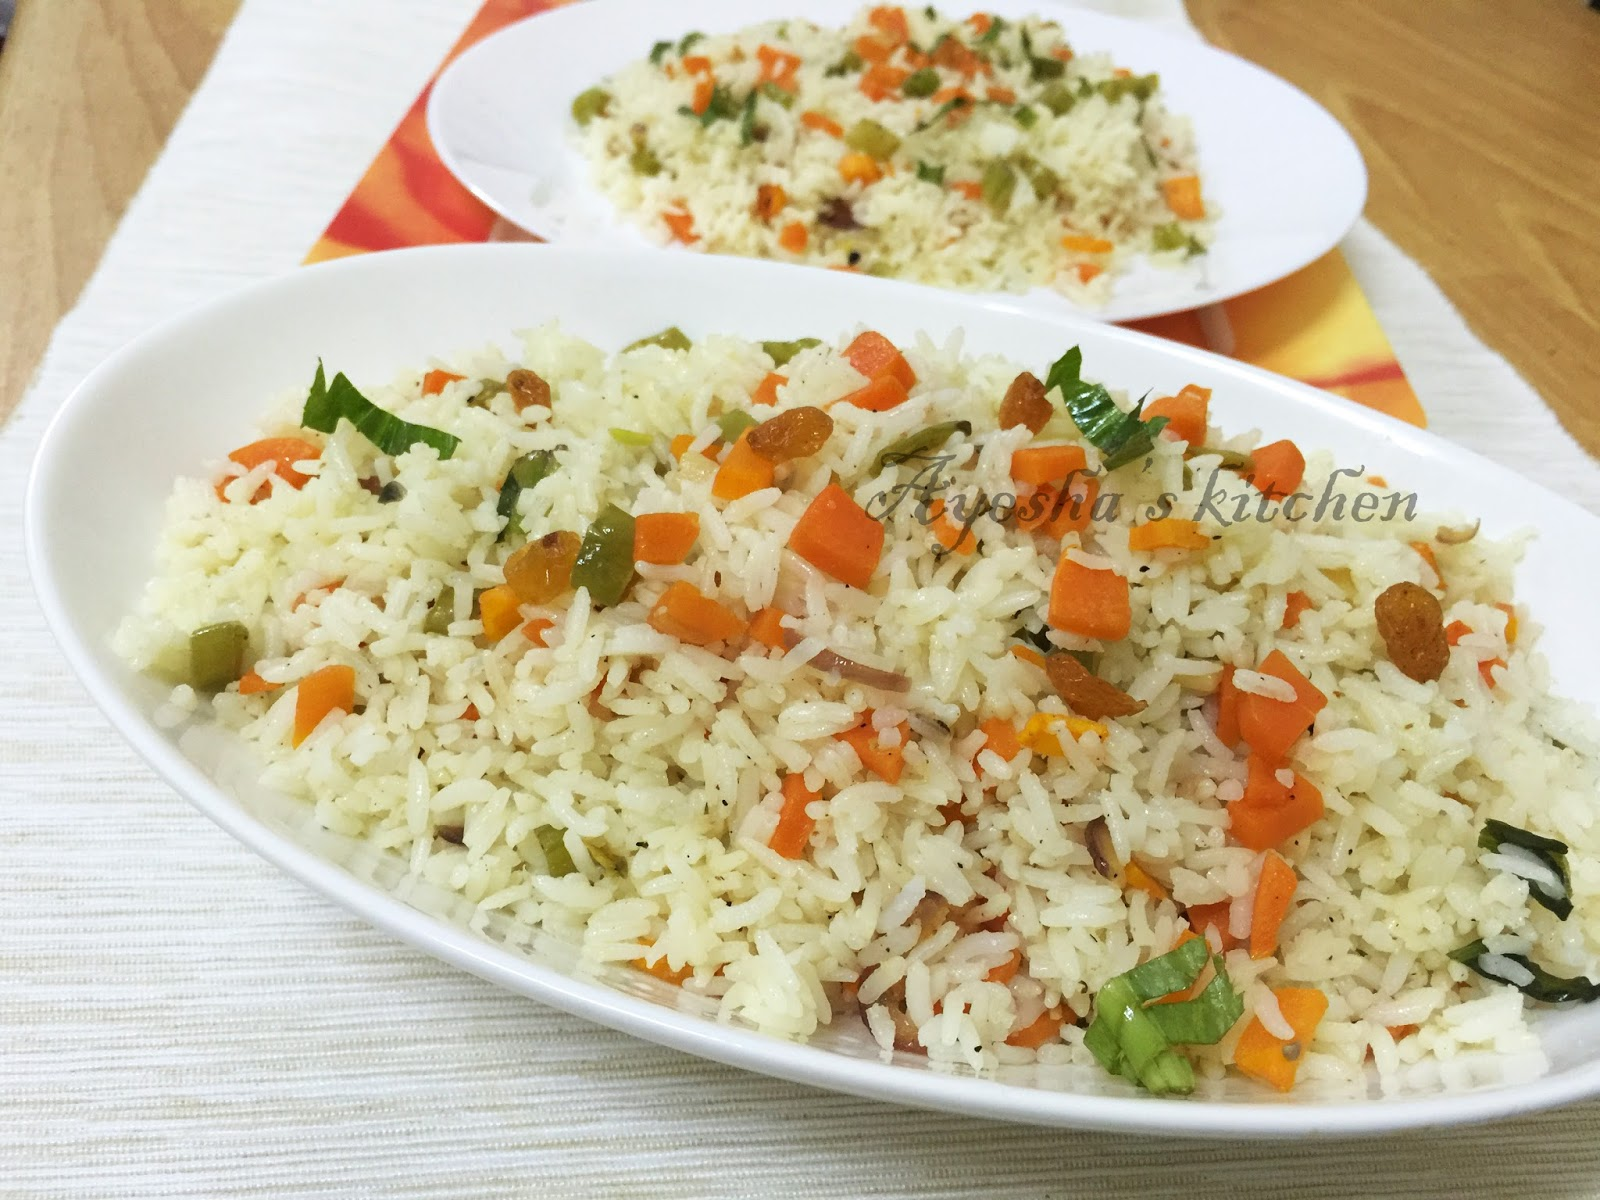 Fried rice recipe vegetable fried rice vegetable fried rice forumfinder Image collections